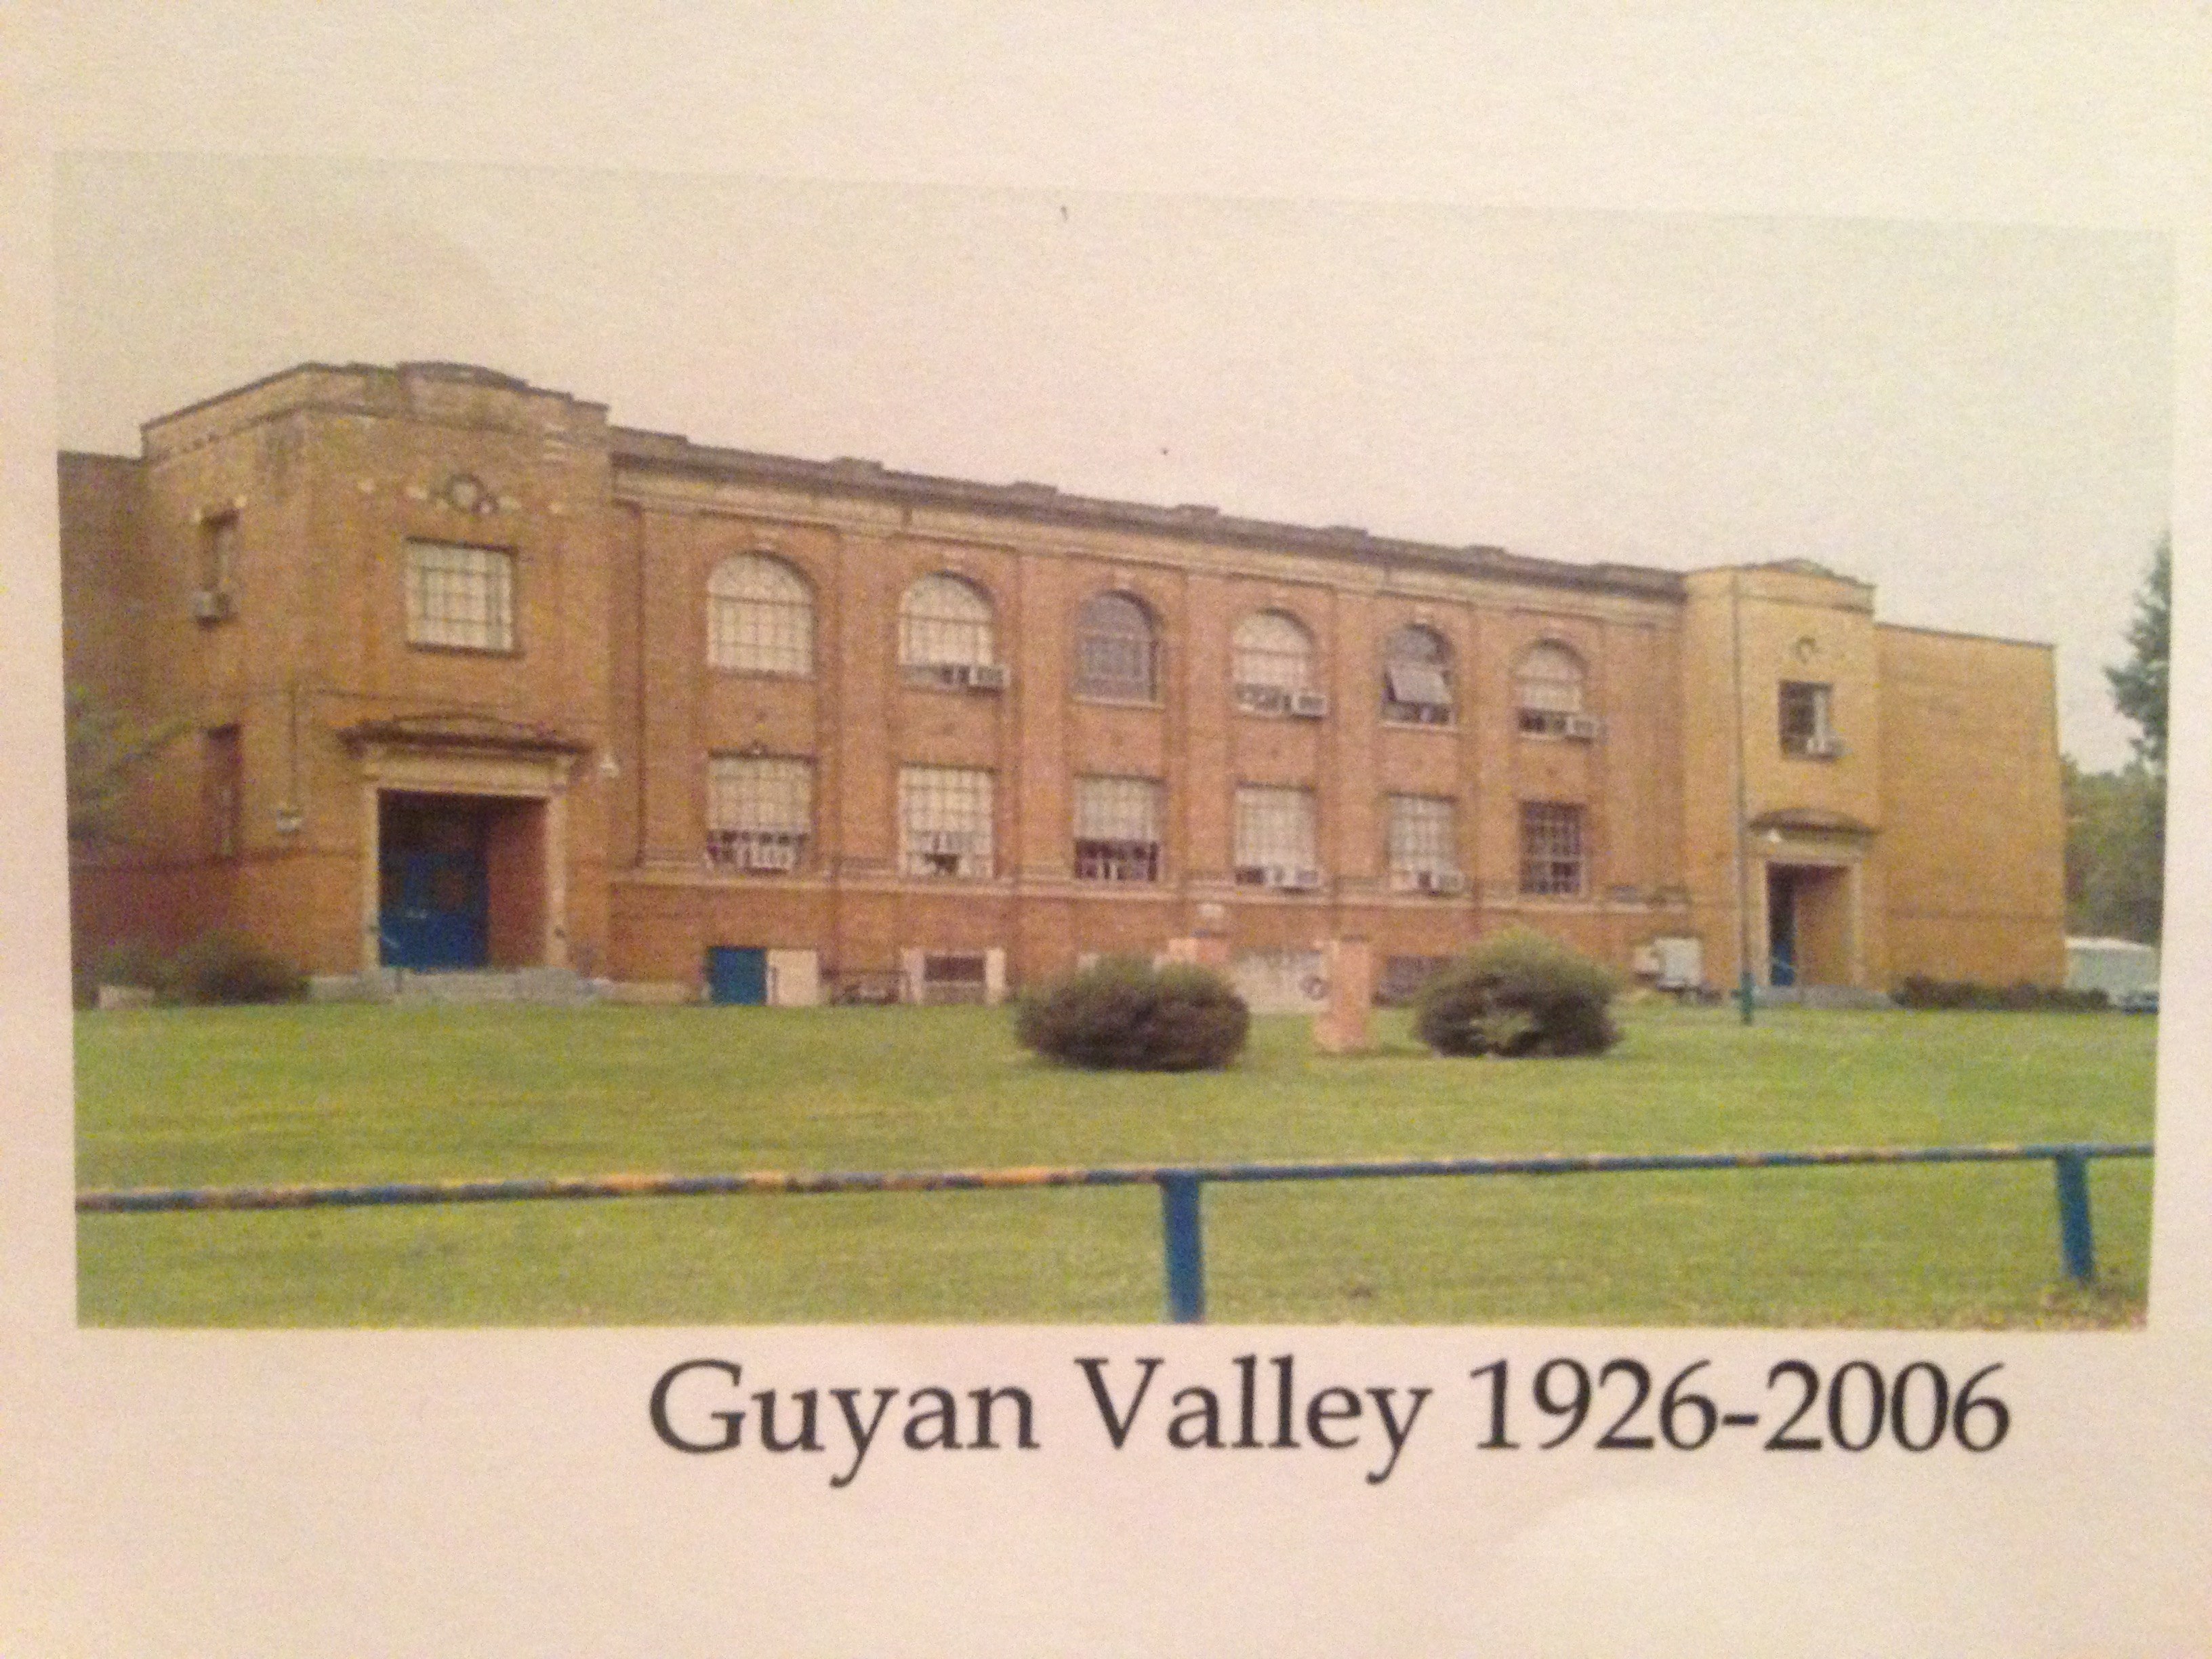 Present day photo of Guyan Valley Middle School